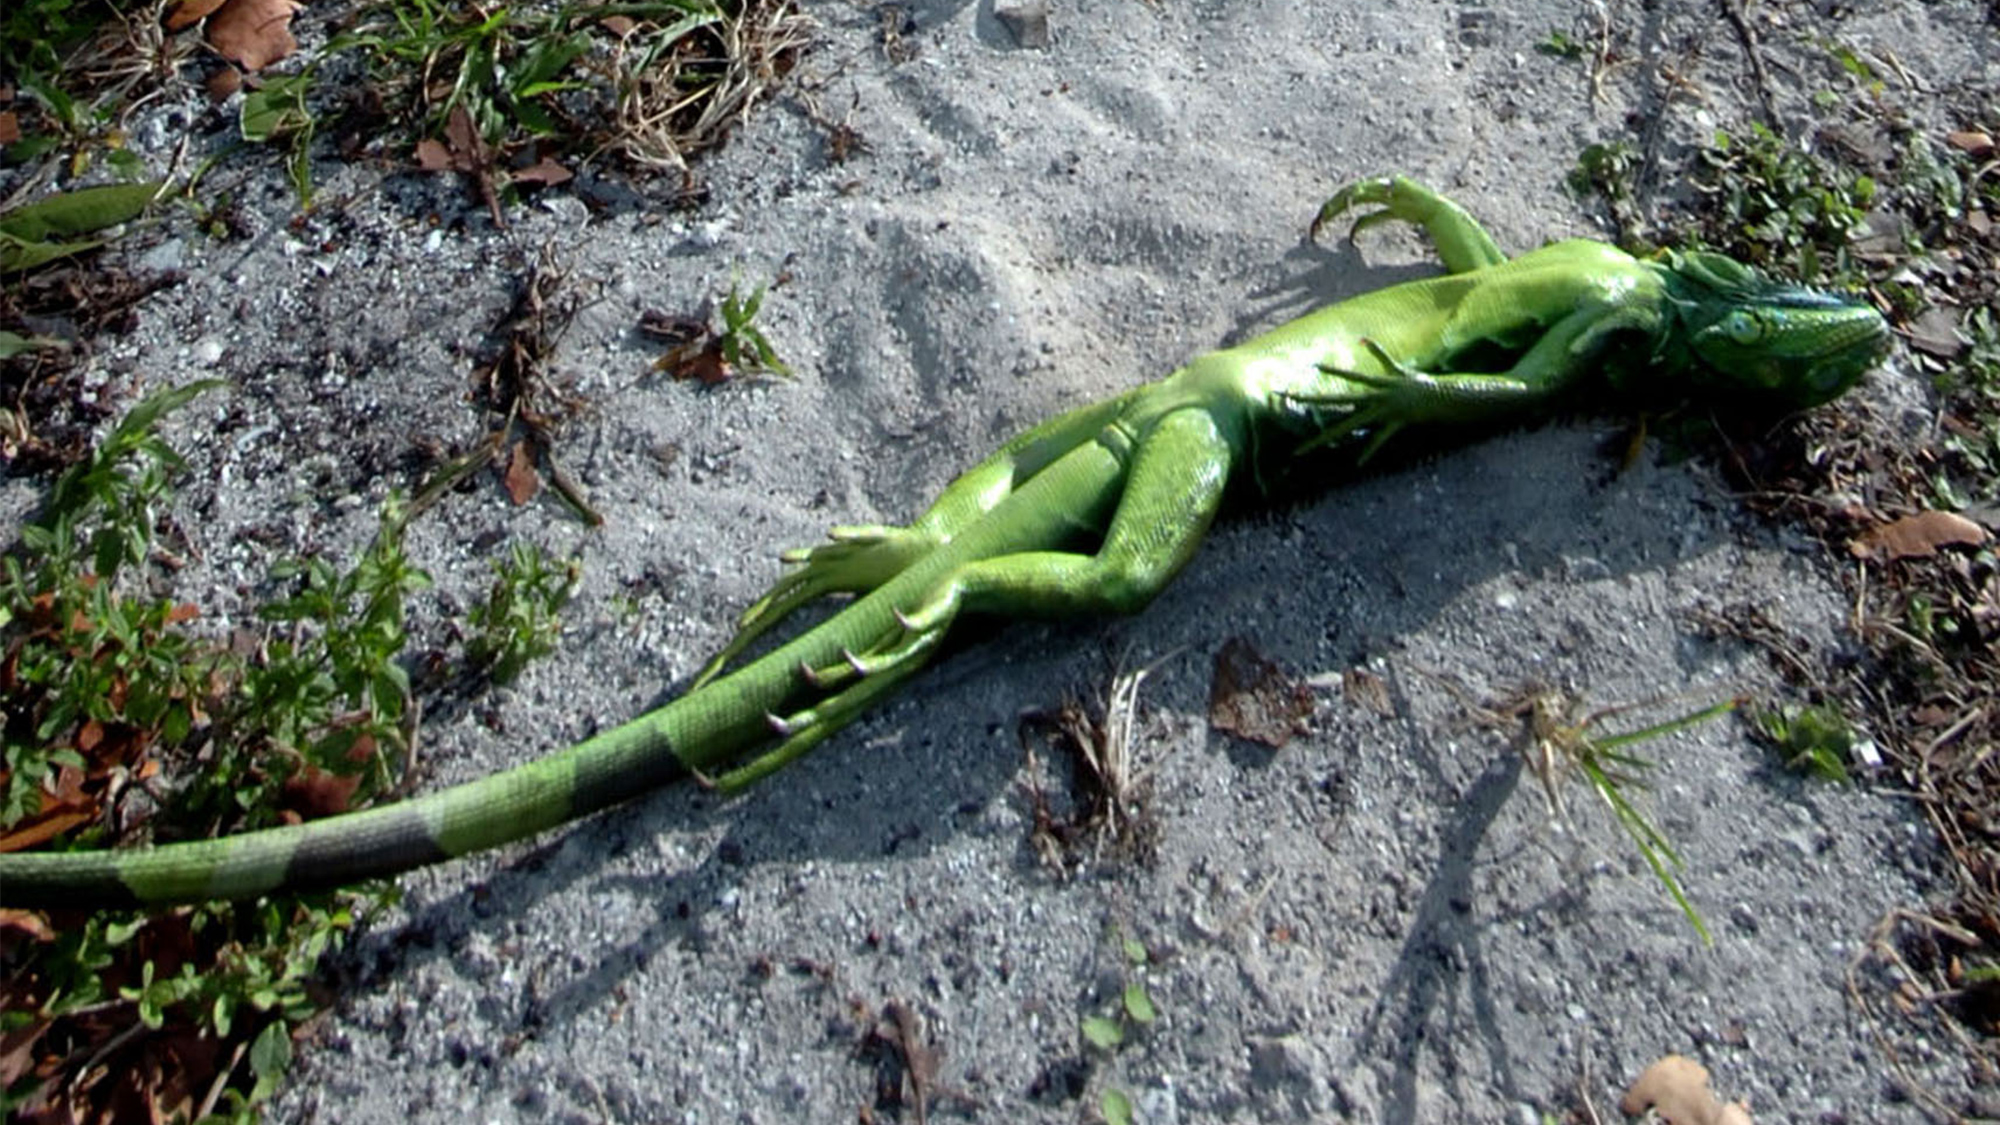 A cold-stunned iguana lies belly-up in Key Biscayne, Florida, during an unusual cold snap in 2008.